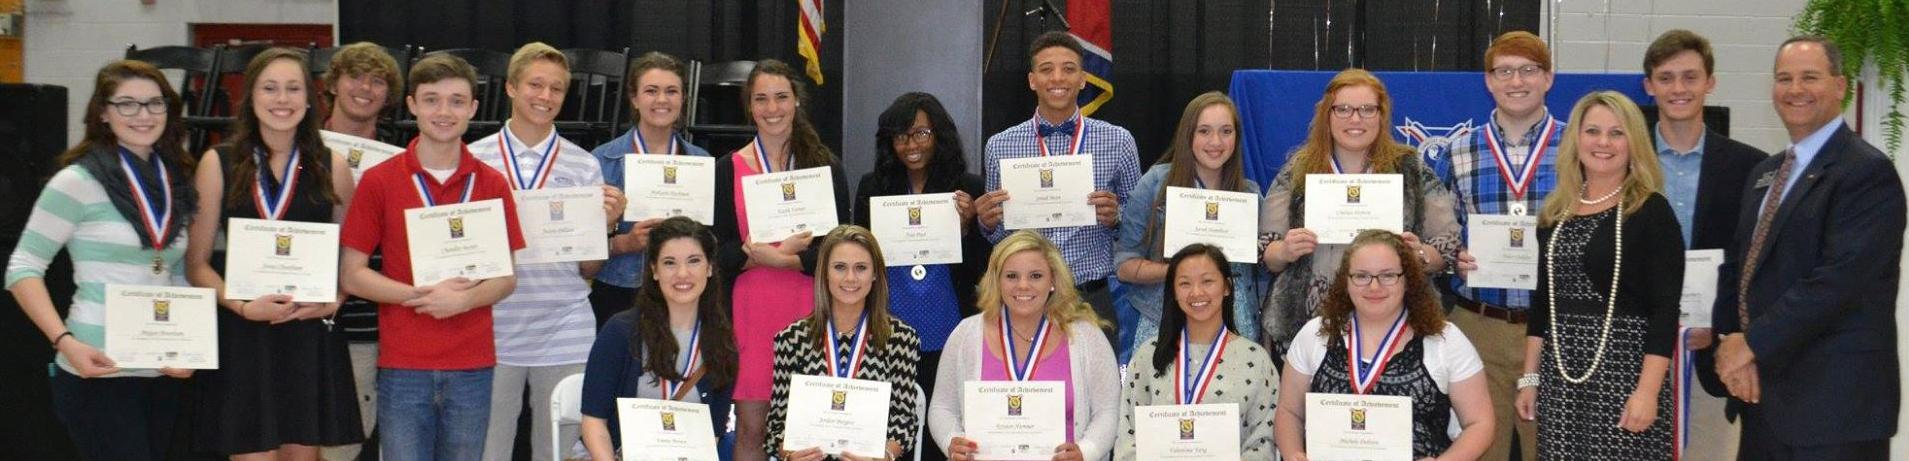 scholarships in tennessee Tired of paying out-of-pocket for your education if you are going to school in tennessee, take a look at the grant and scholarship program offers apply soon before.